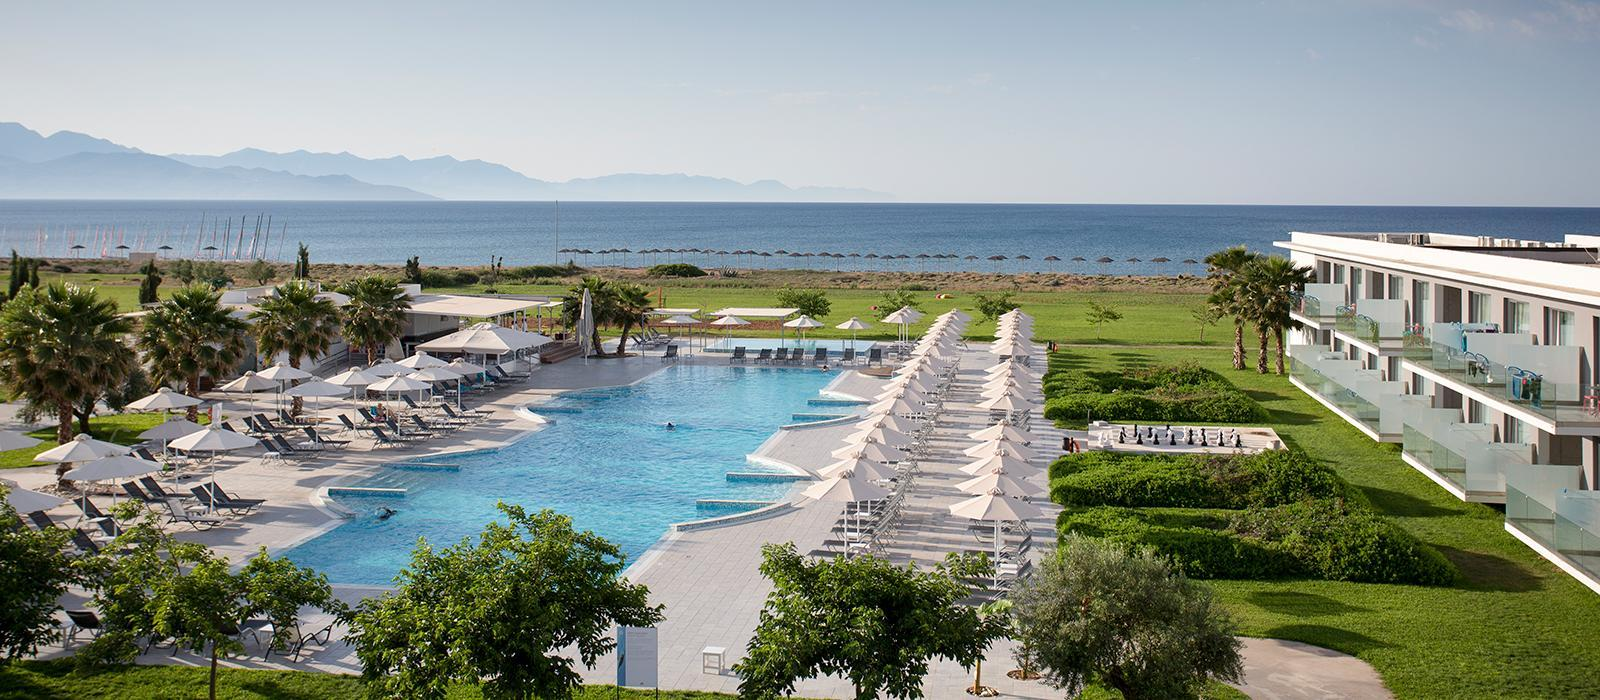 View of messini beachclub and pool in Greece